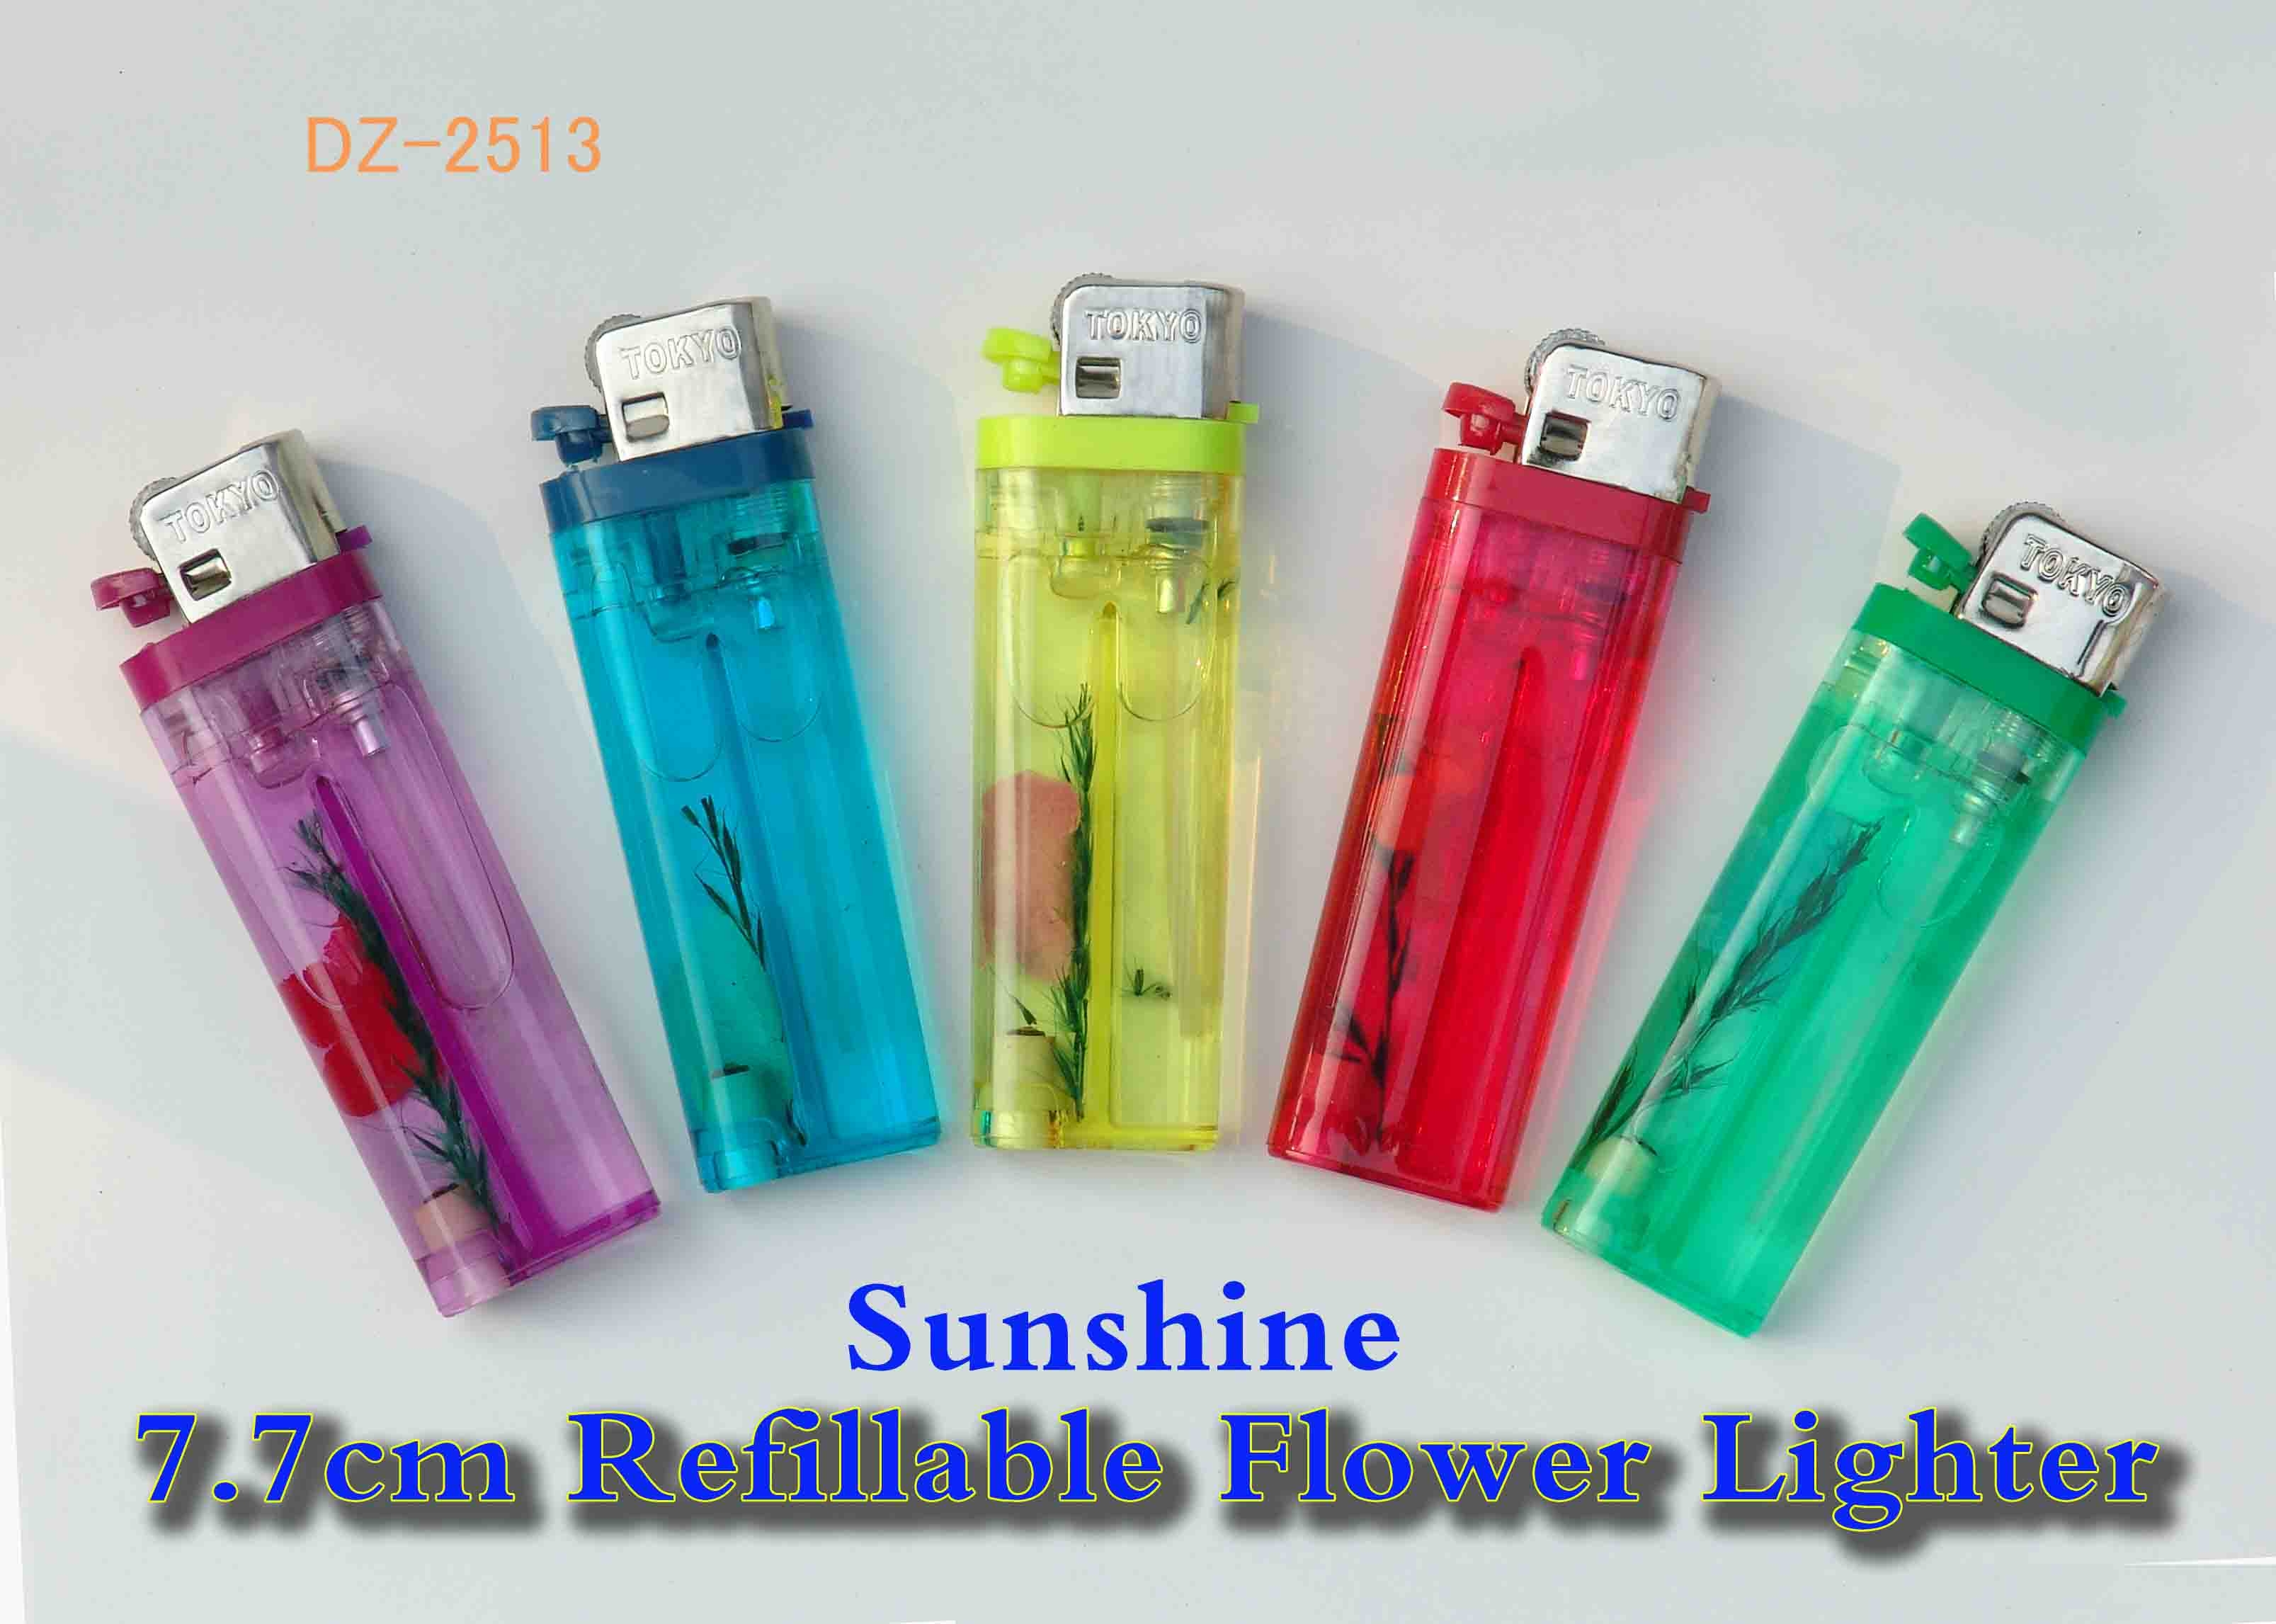 Flower refillable gas lighter with color head